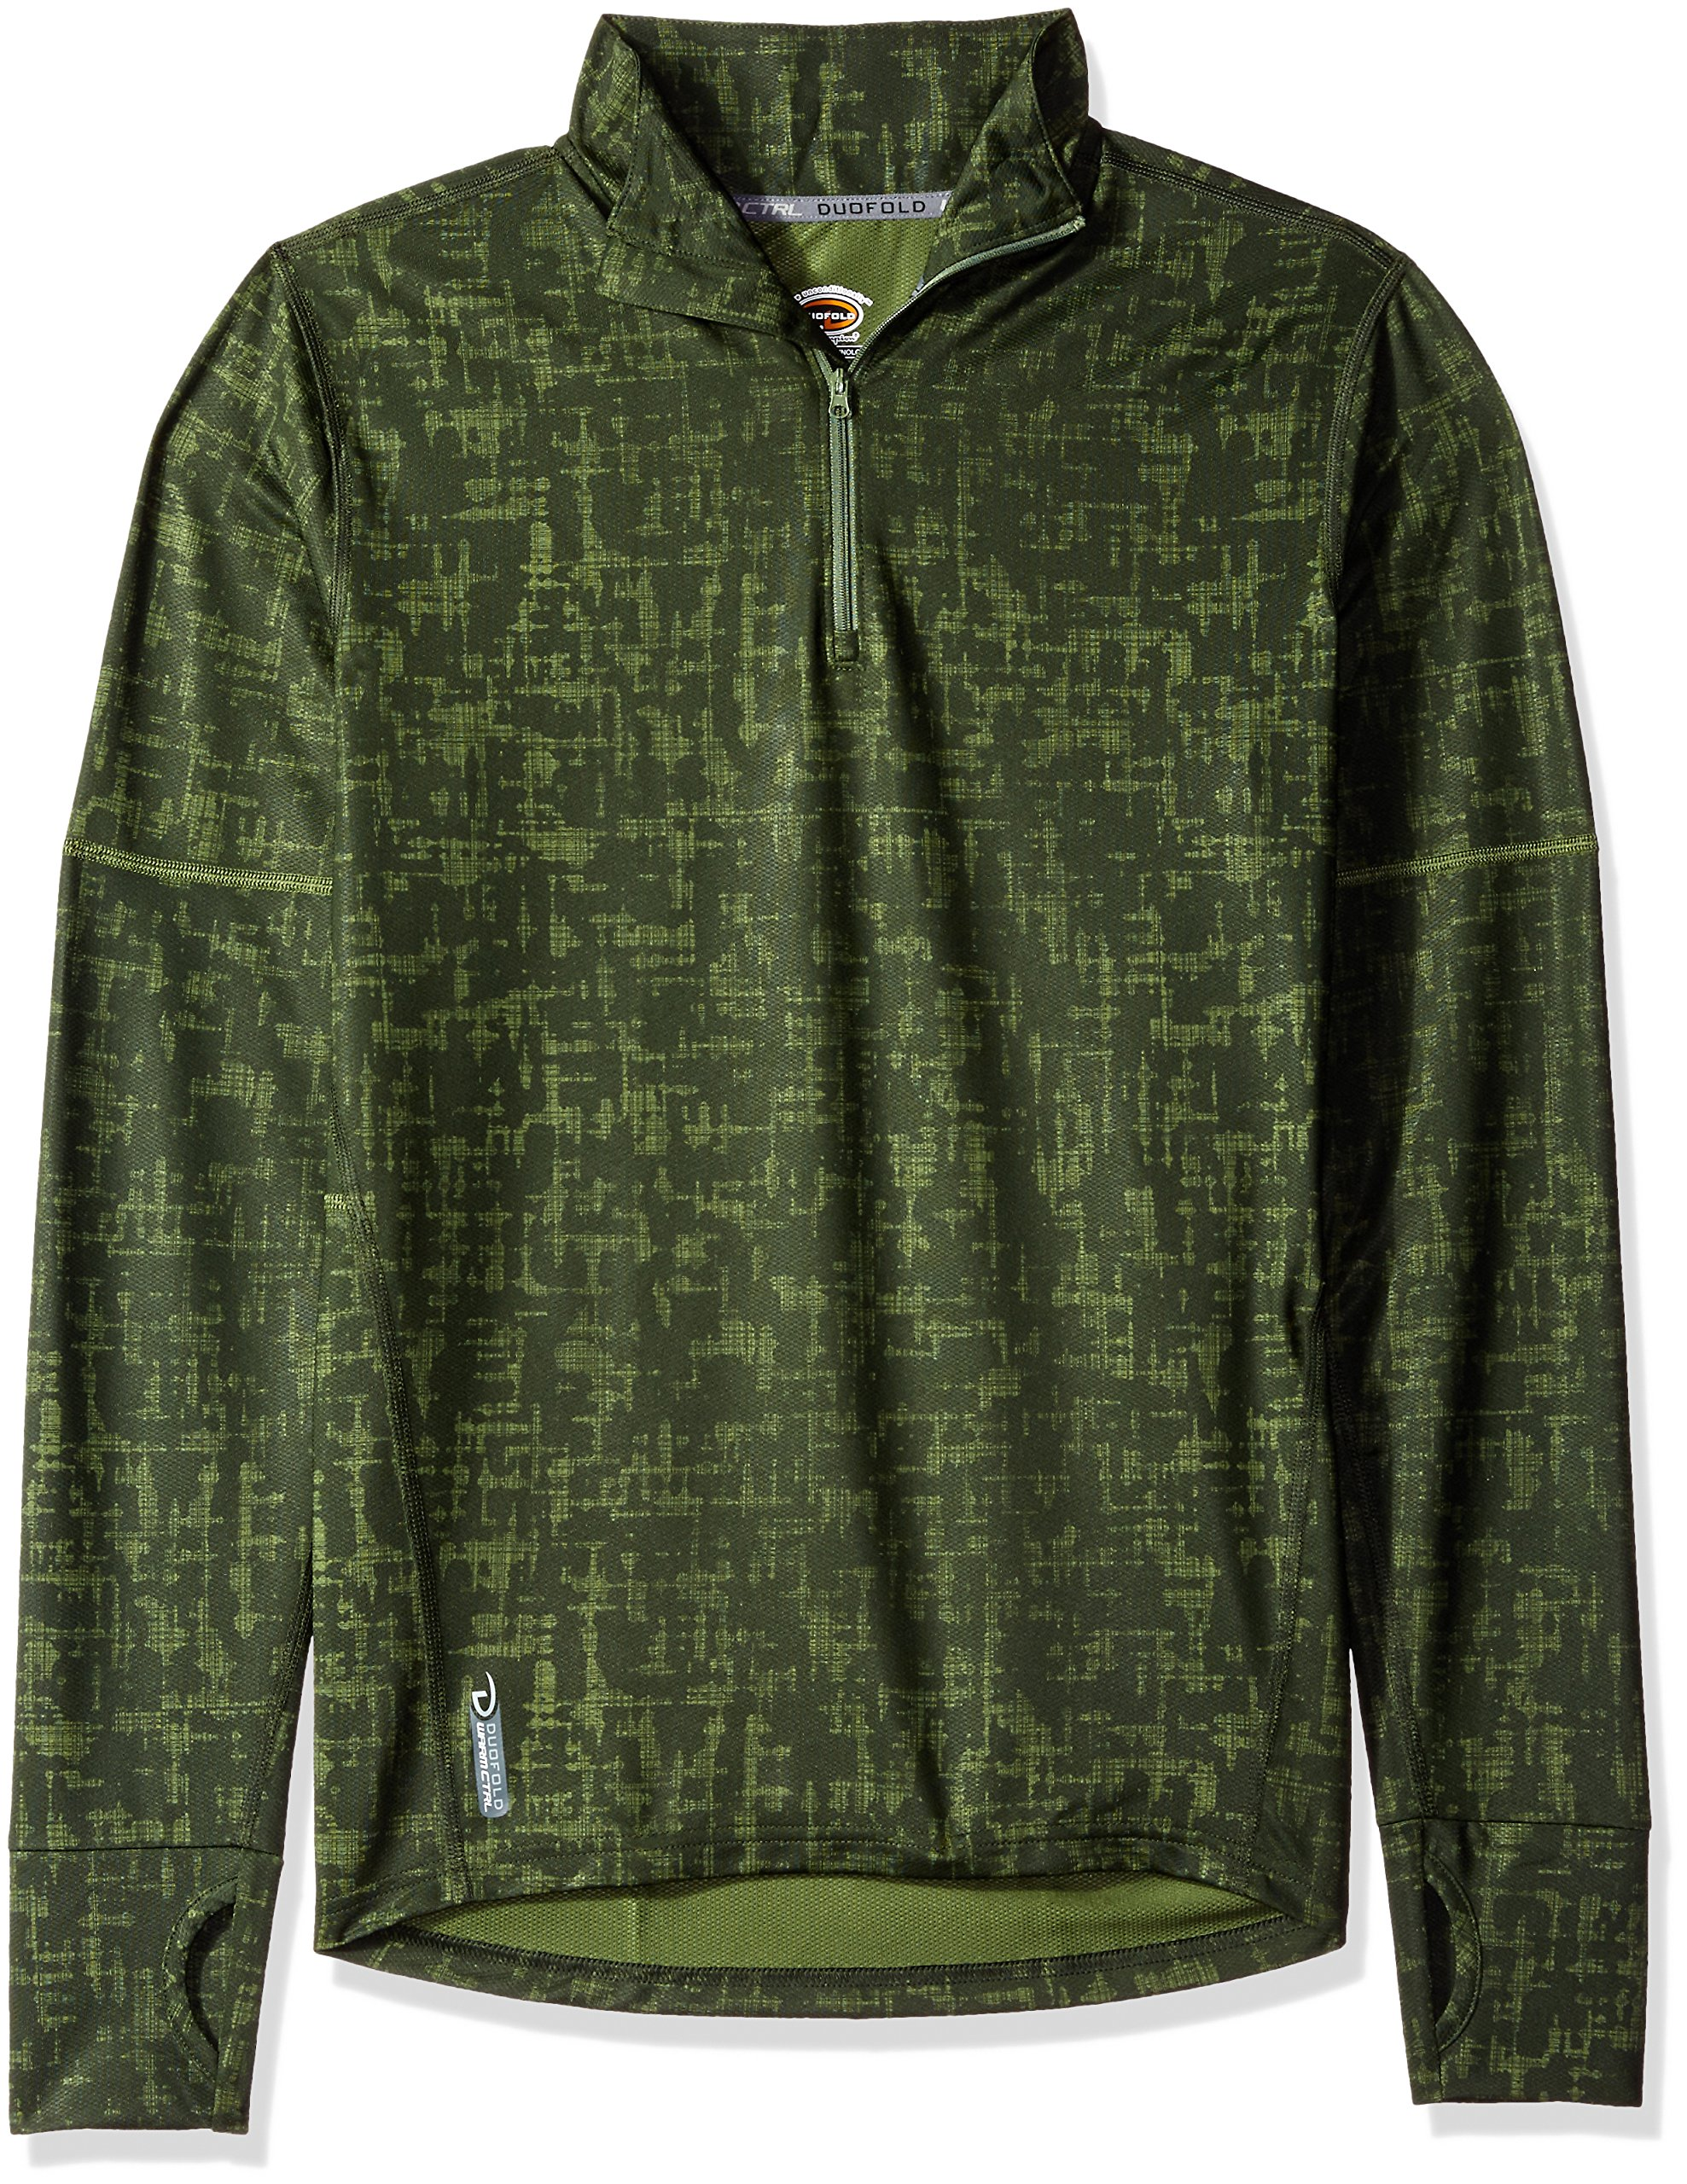 Duofold Men's Light Weight Thermatrix Performance Thermal Quarter Zip Pullover, Service Green Glitch Texture, L